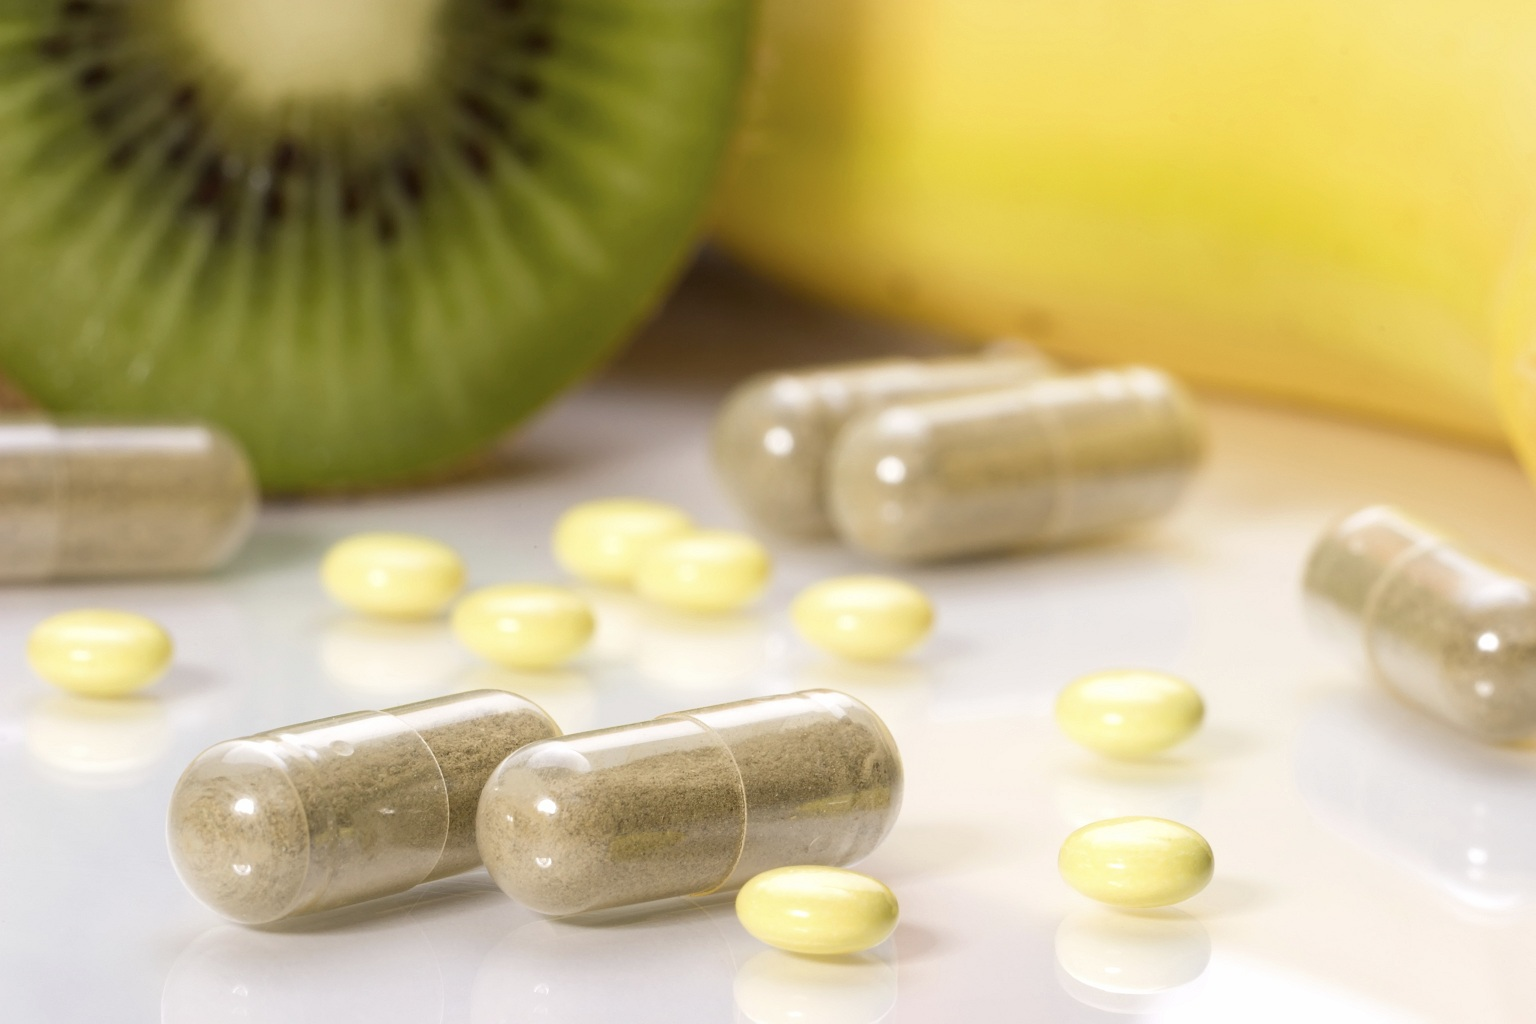 Consumption of Sports Nutrition Products on the Rise as Health and Fitness Gains Importance